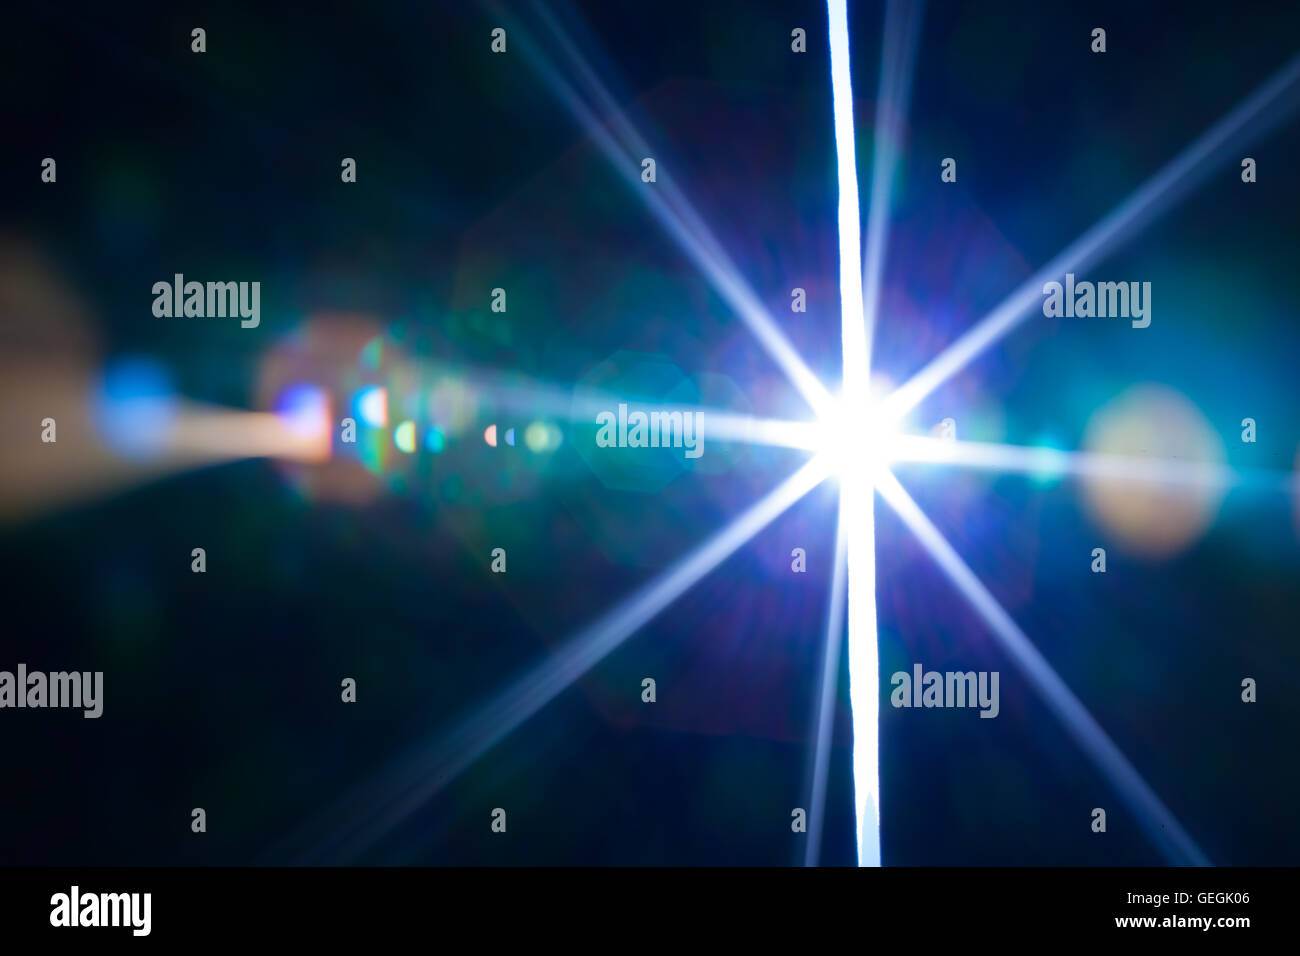 Real photographic lens flare of a bright light through a slit - Stock Image